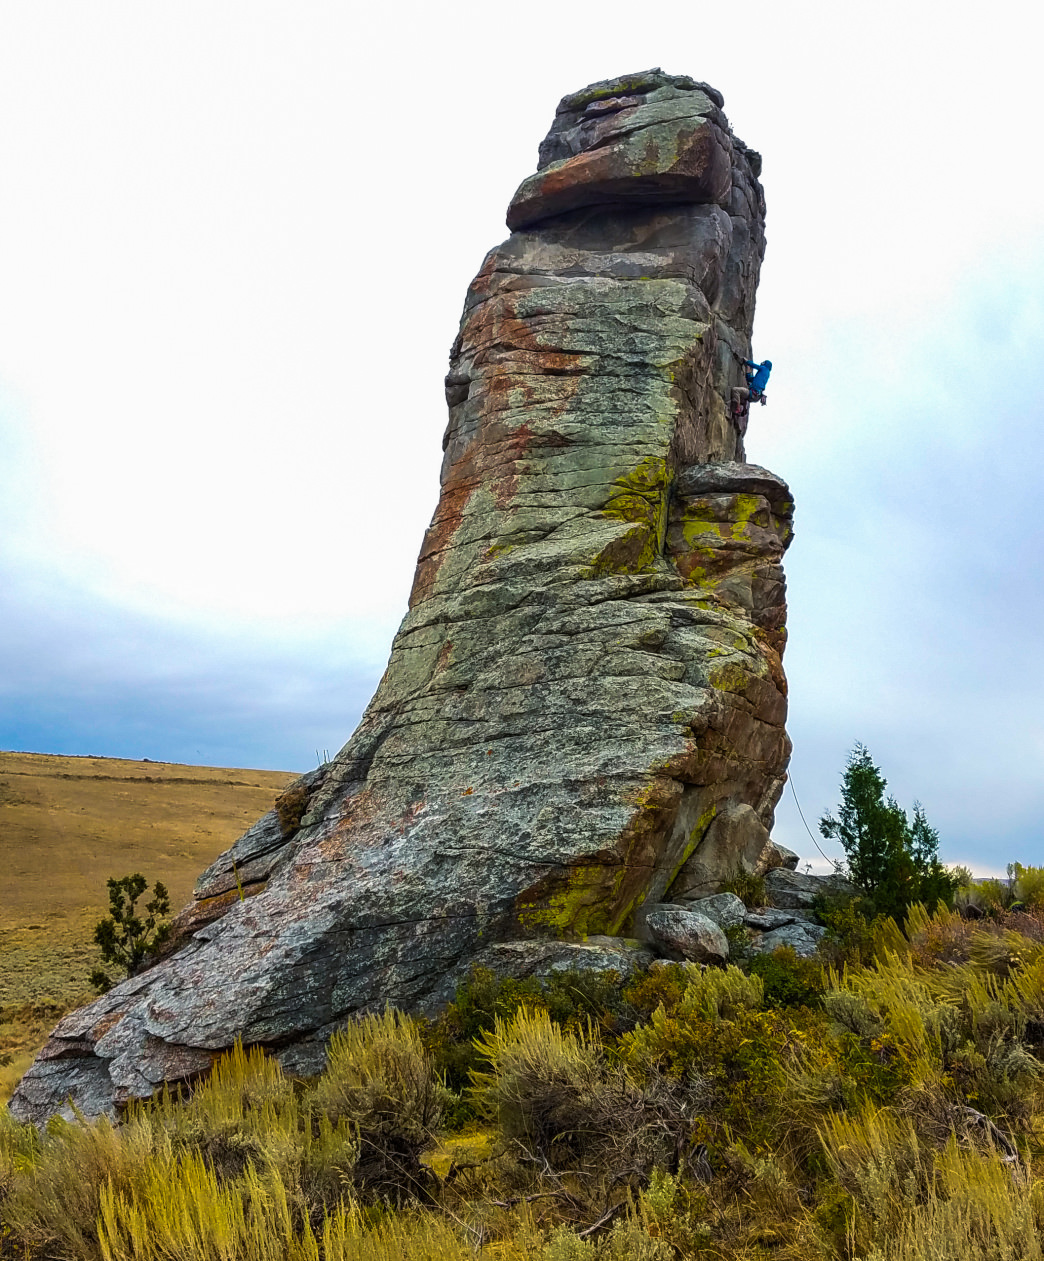 The author sending White Line Fever (5.11a PG13) on the Private Idaho formation, an isolated tower high above The City in an active cattle pasture.